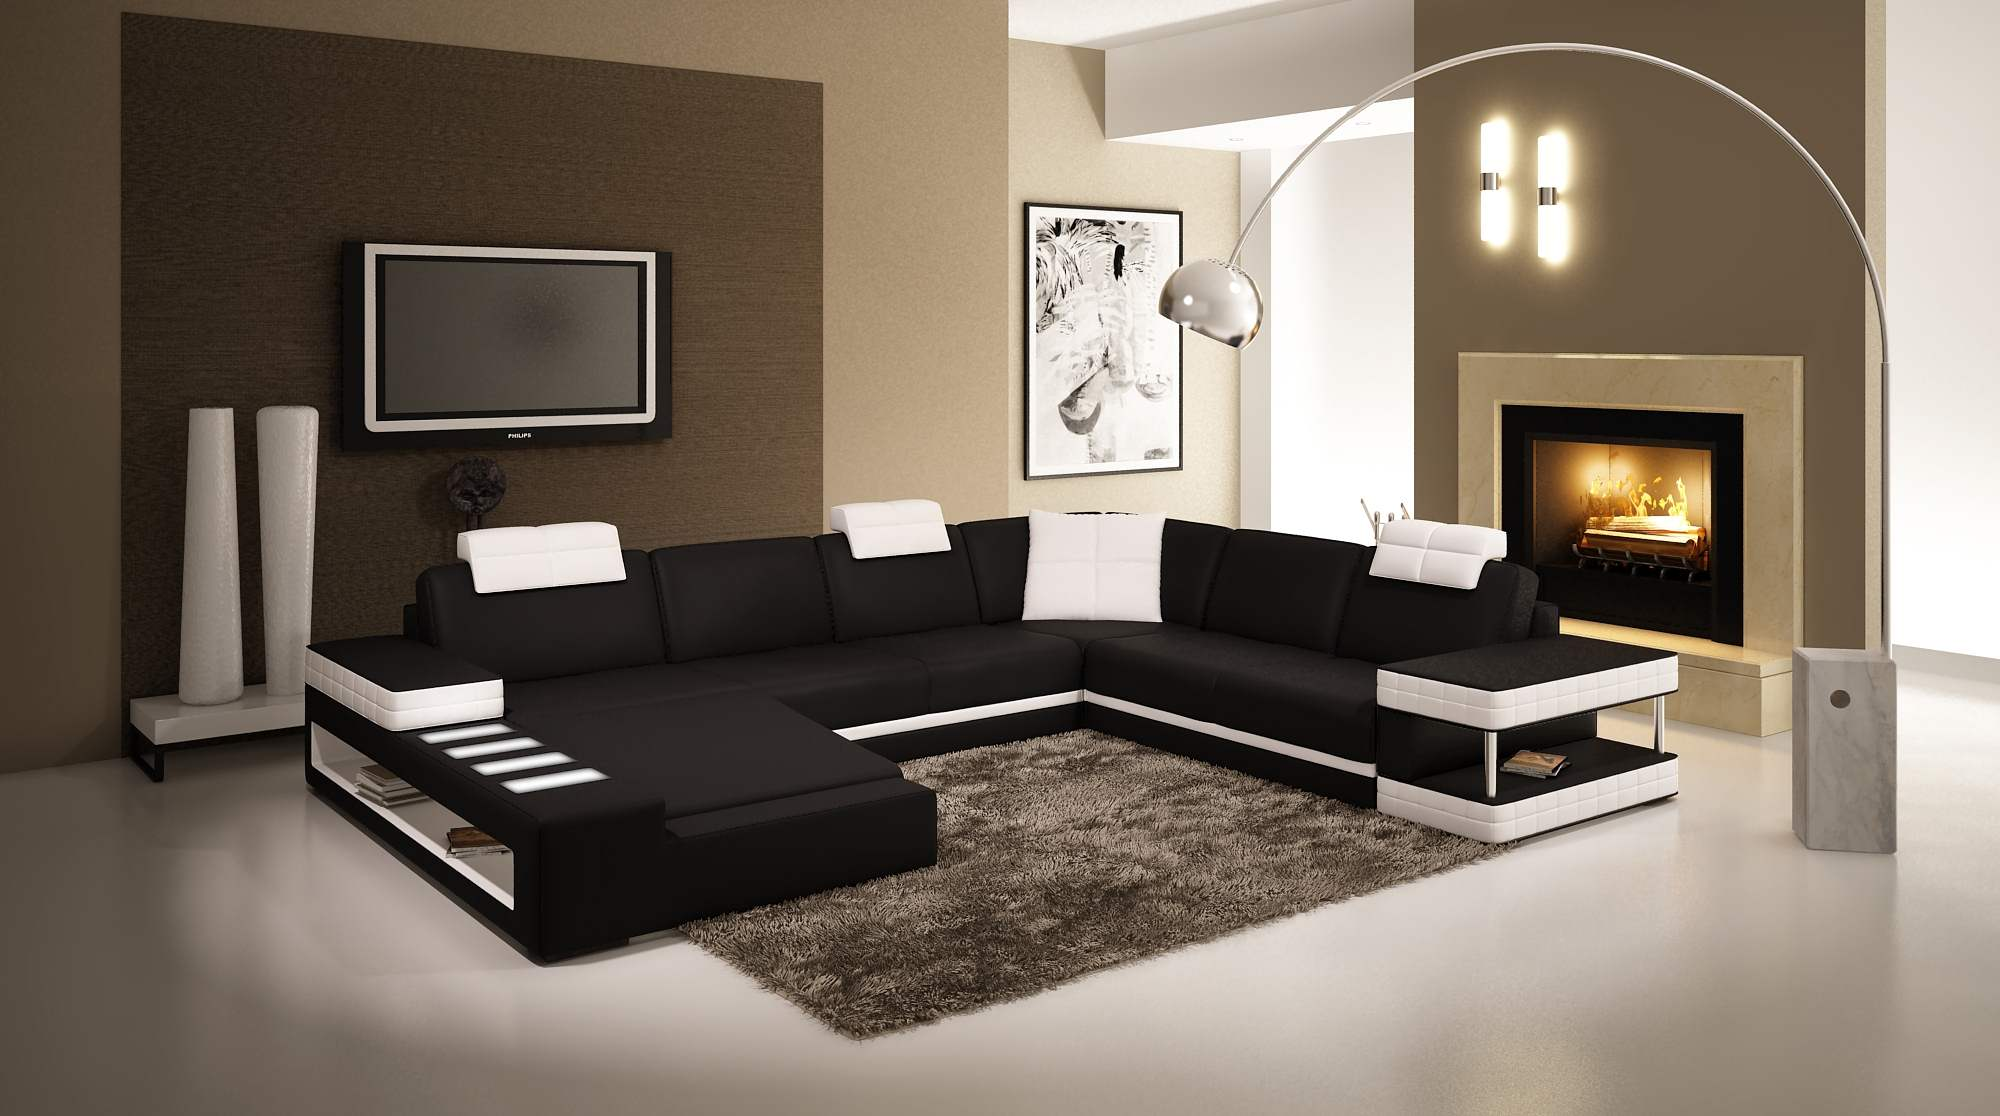 deco in paris canape d angle panoramique en cuir noir et. Black Bedroom Furniture Sets. Home Design Ideas